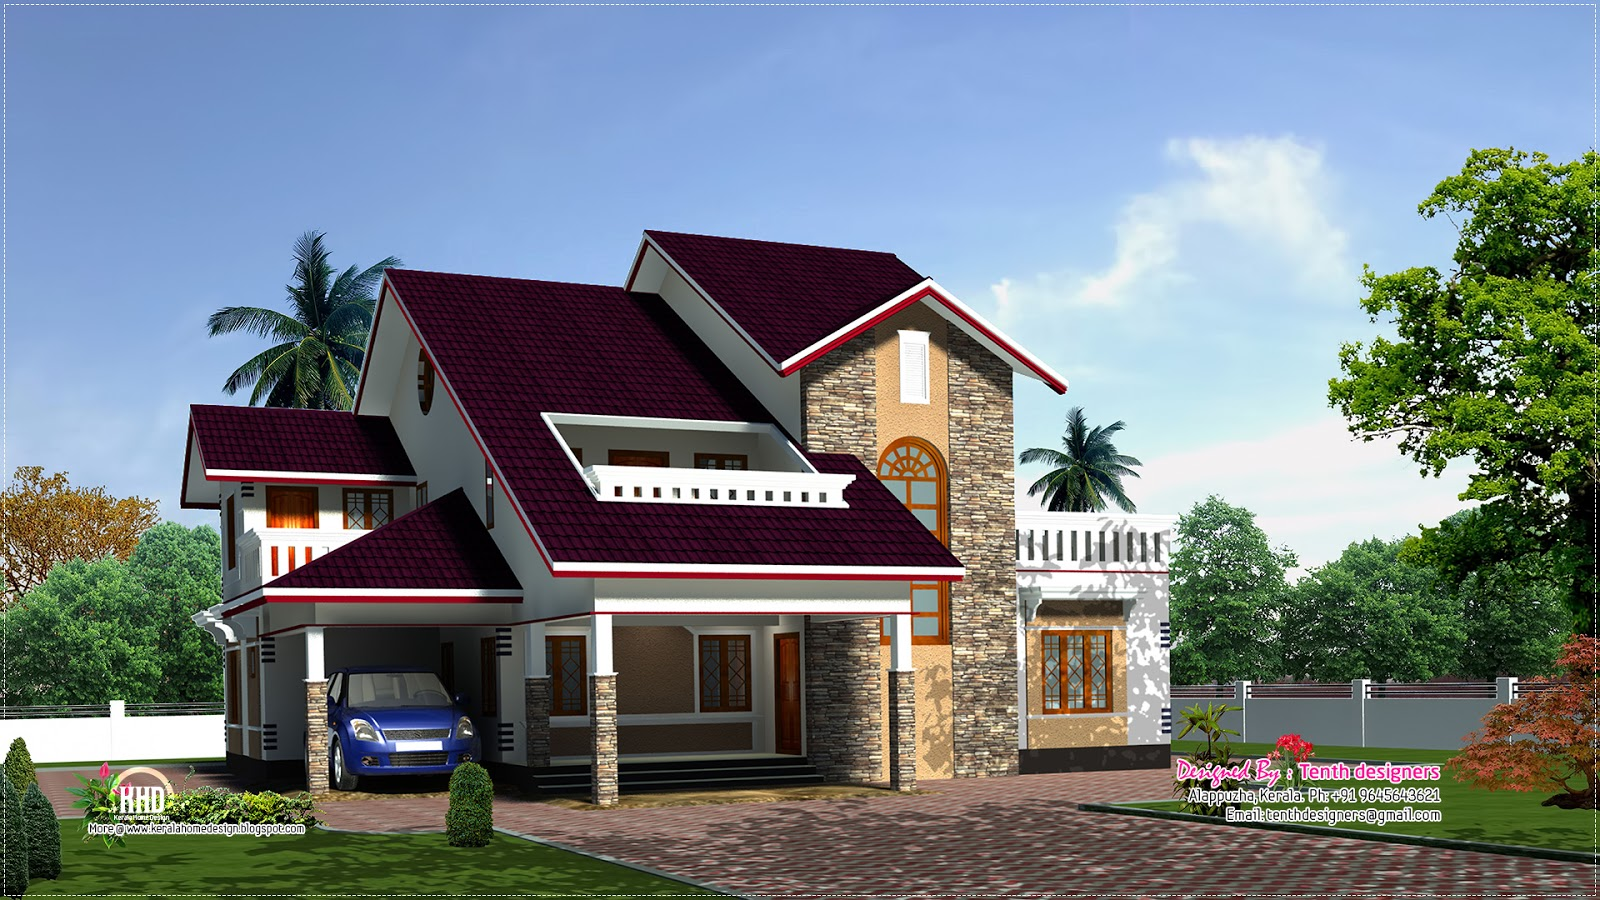 3200 sq feet luxury house plan elevation   Kerala home design and